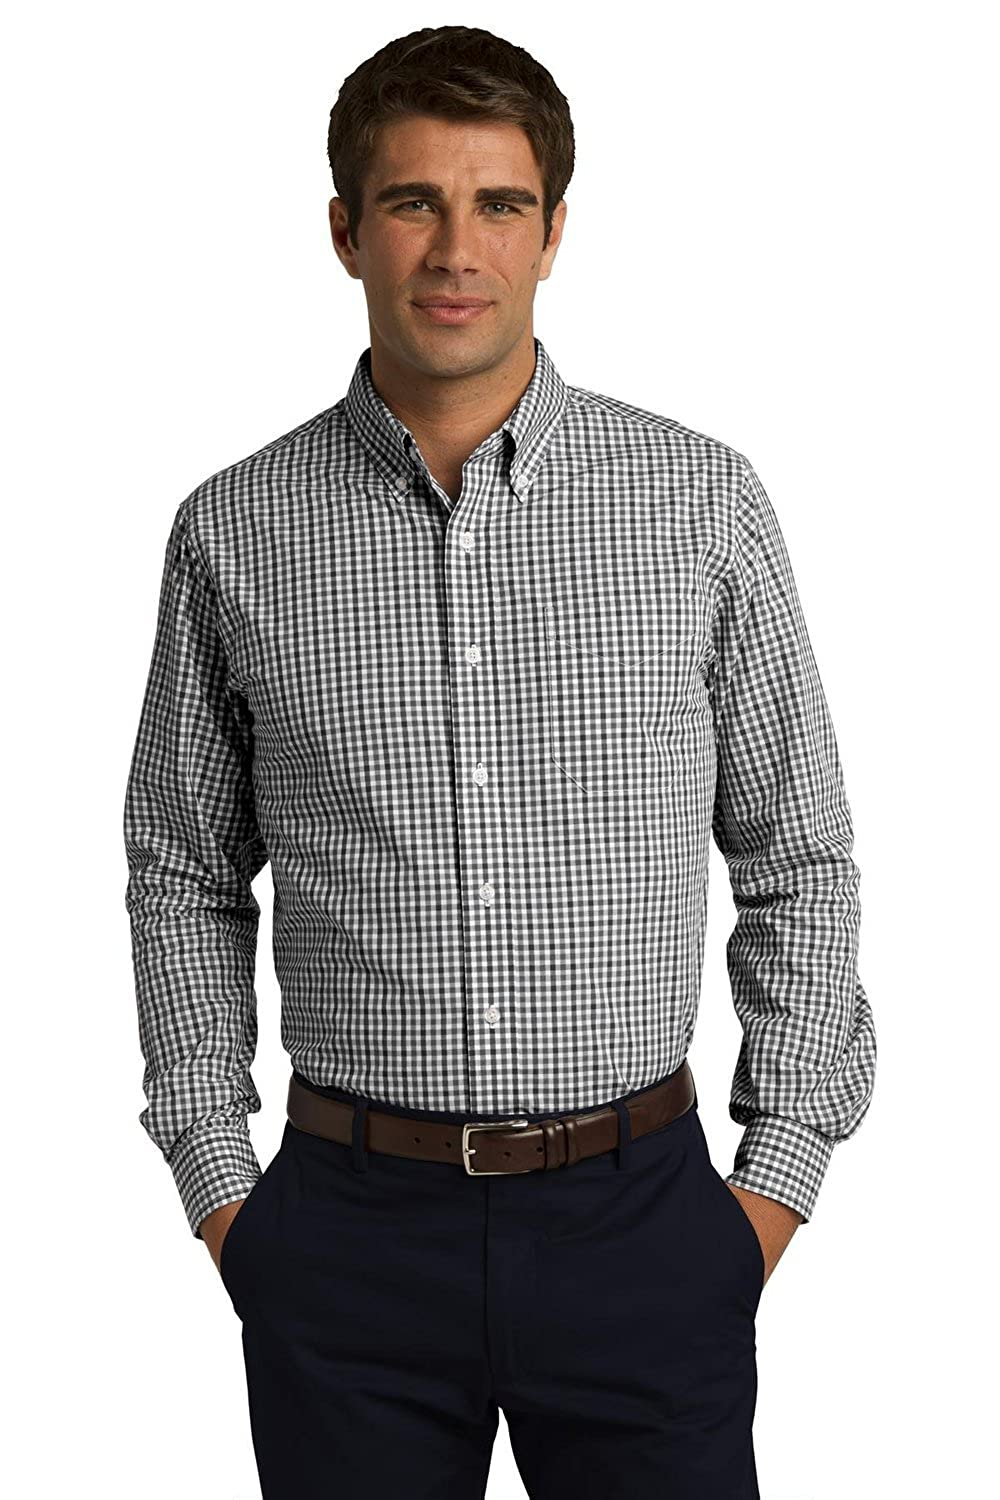 S654 Port Authority Long Sleeve Gingham Easy Care Shirt